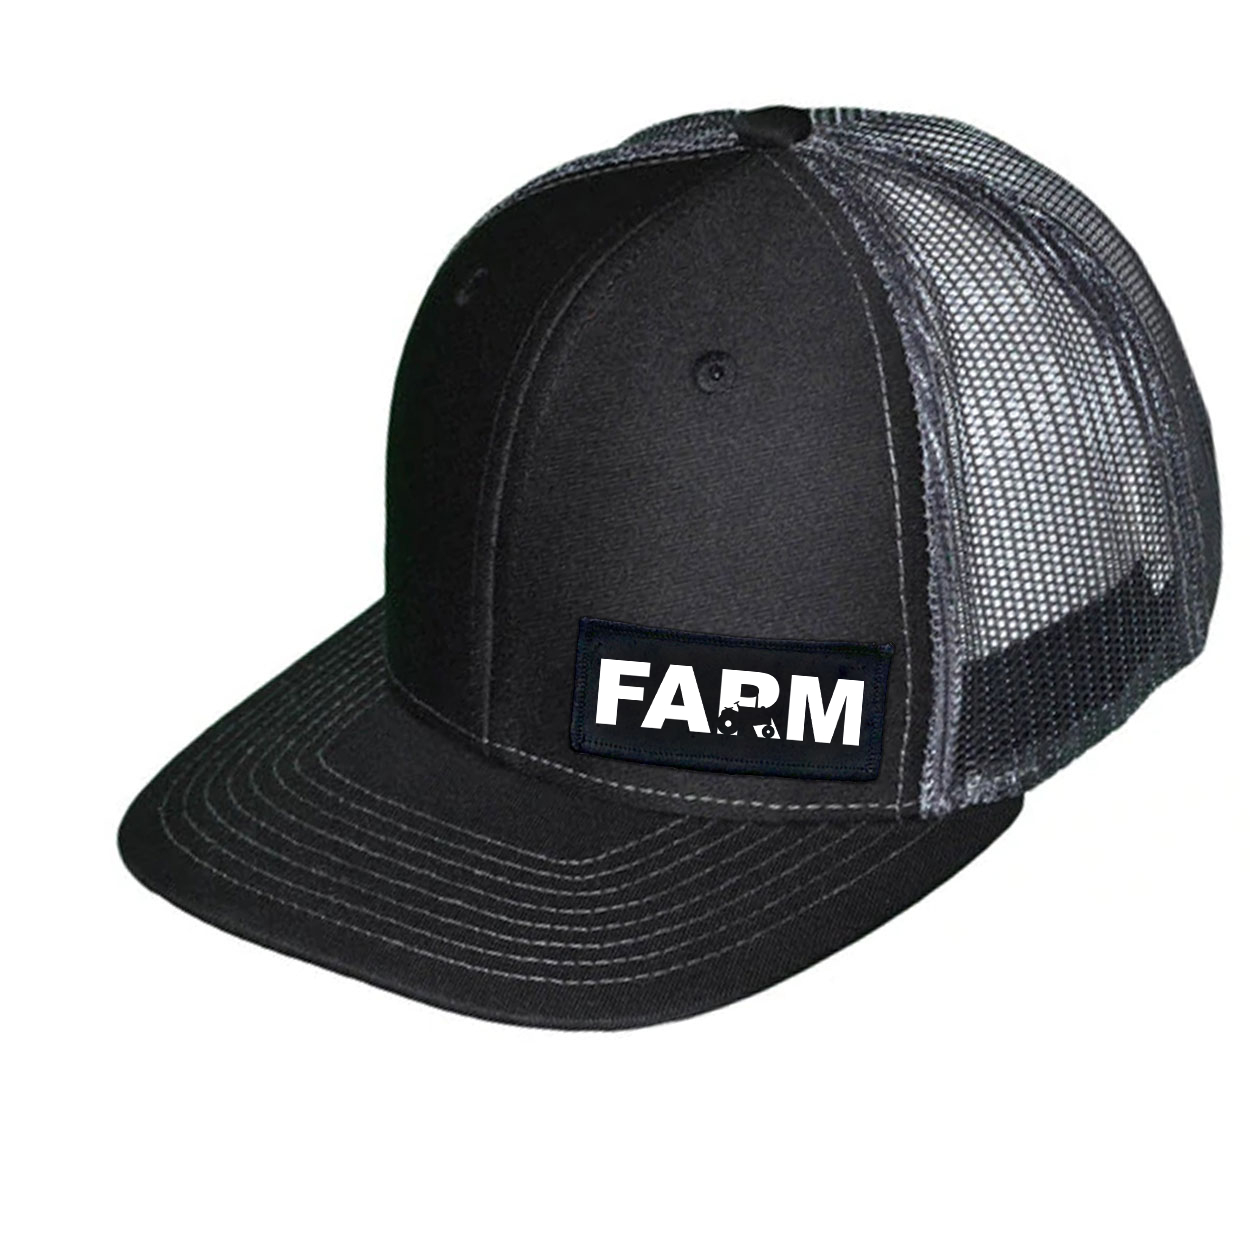 Farm Tractor Logo Night Out Woven Patch Snapback Trucker Hat Black/Dark Gray (White Logo)